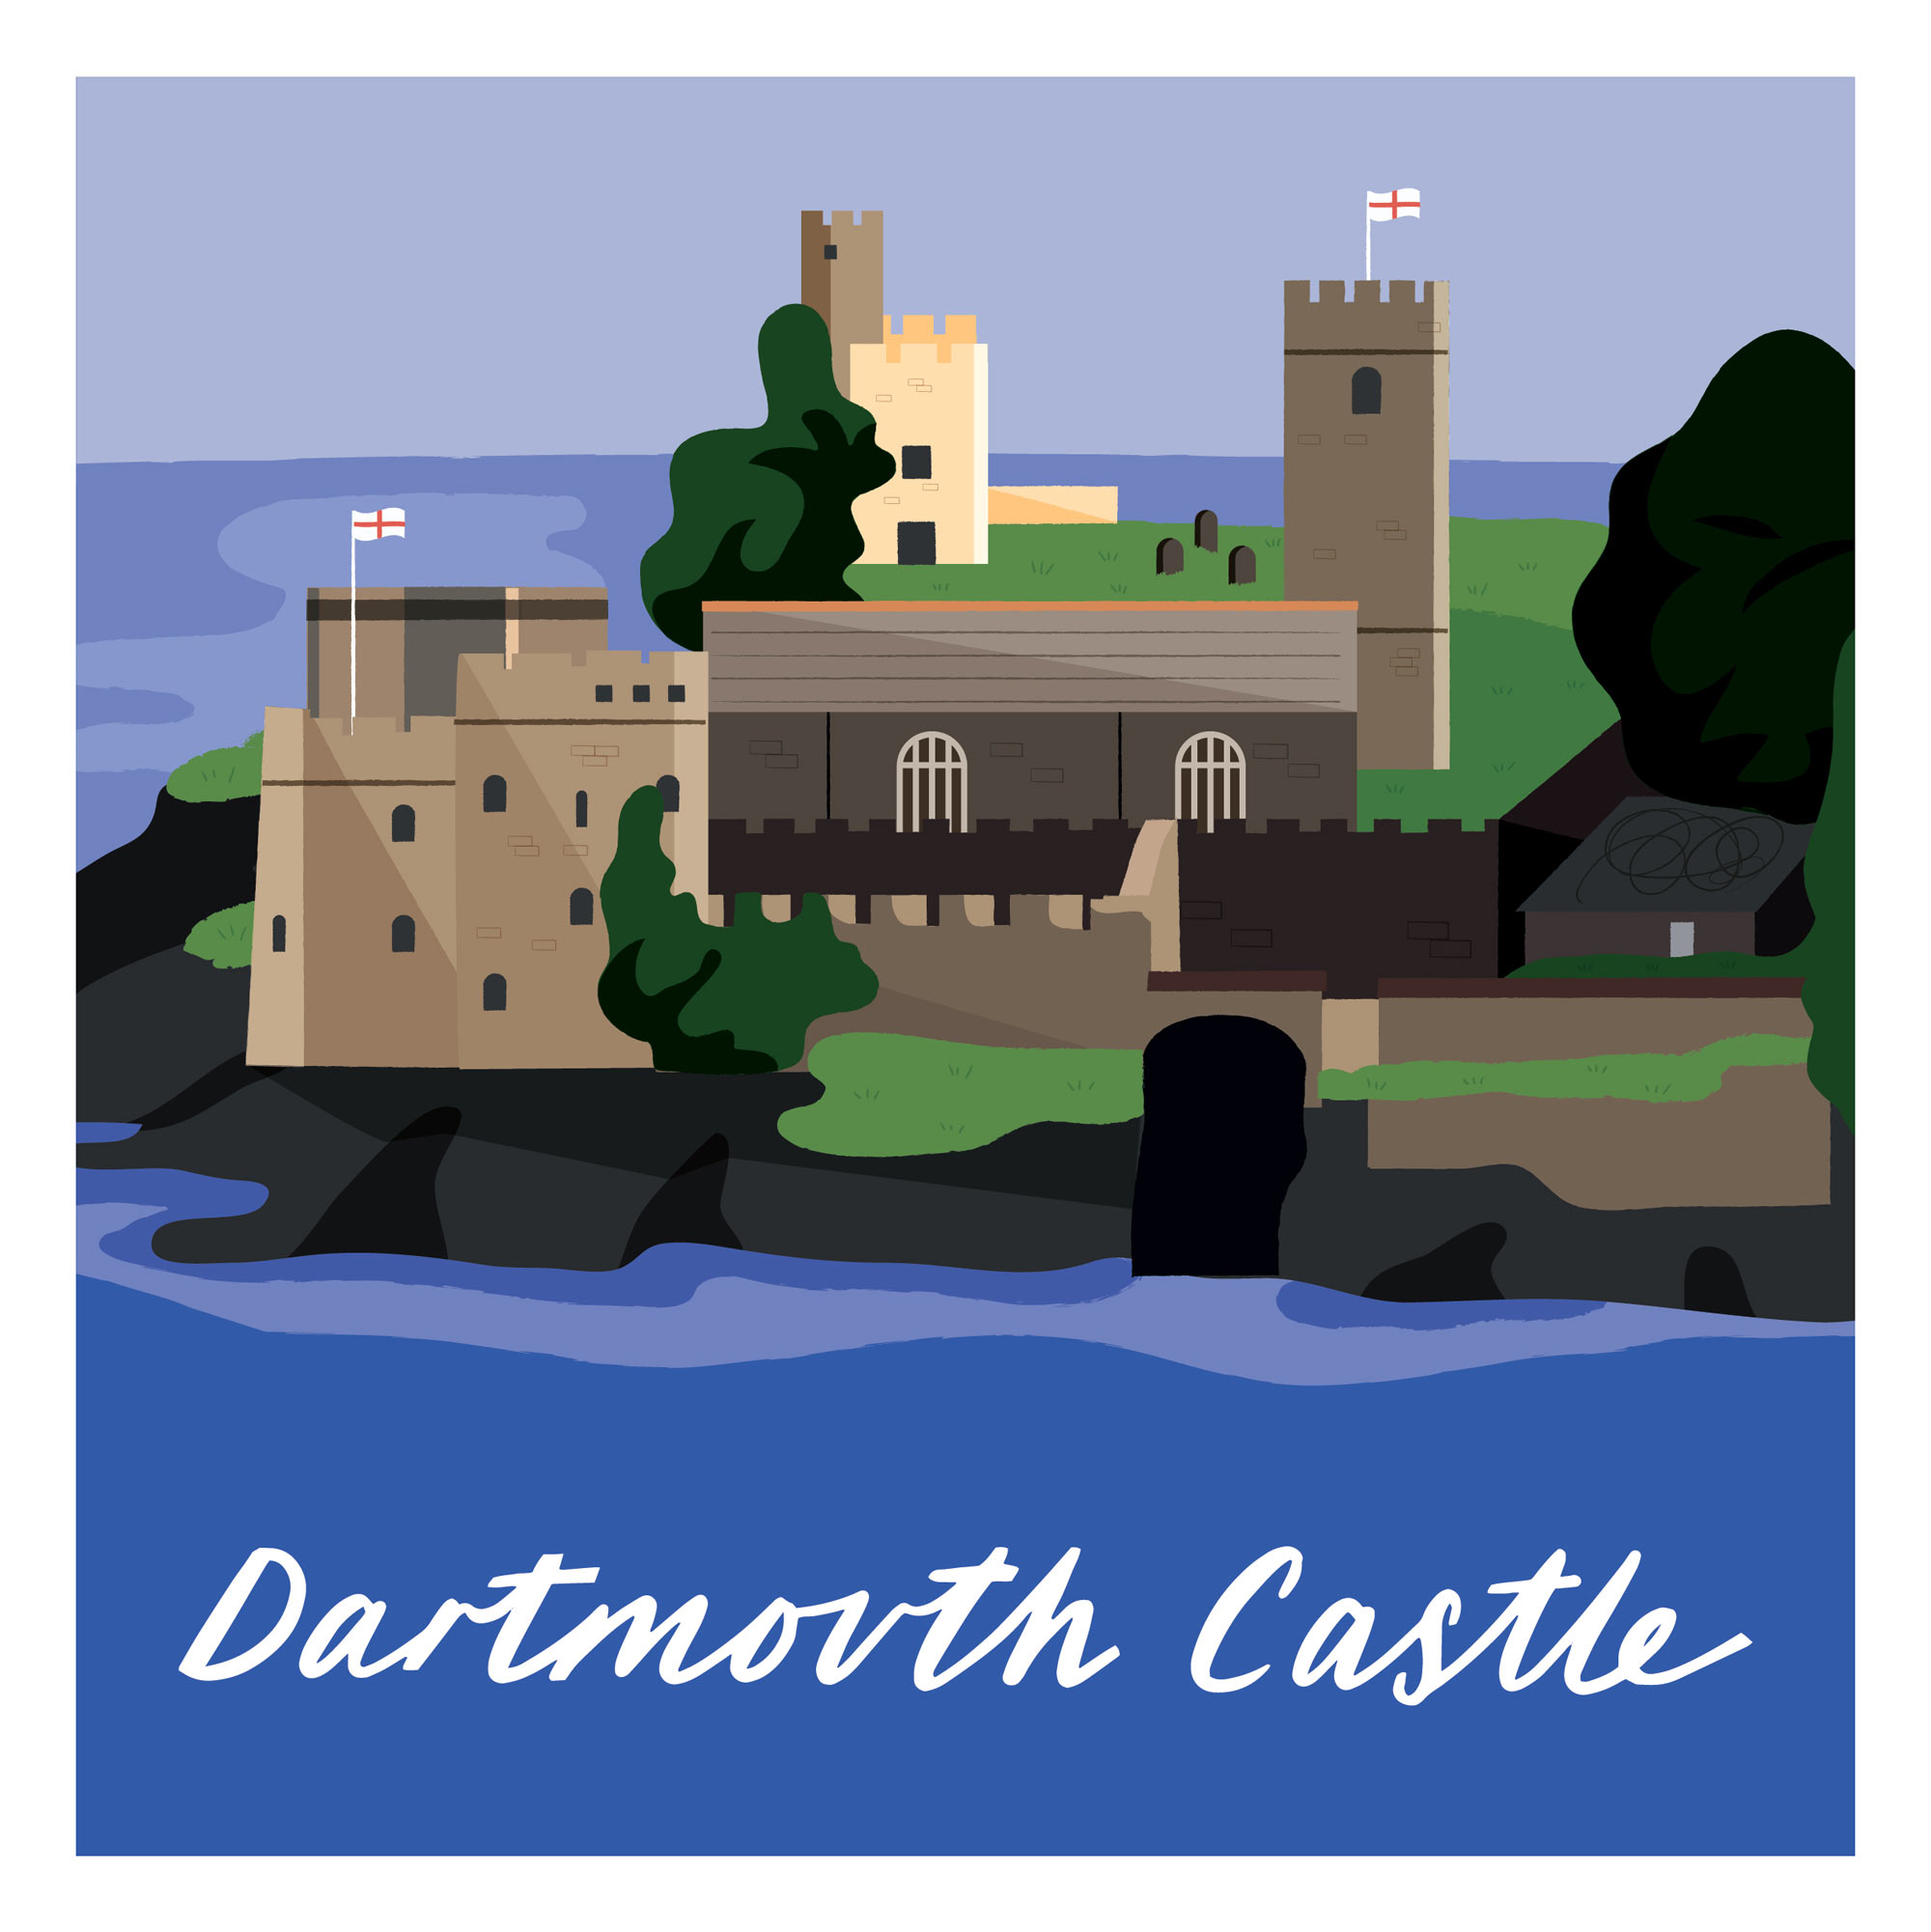 Dartmouth Castle by Elly Jahnz